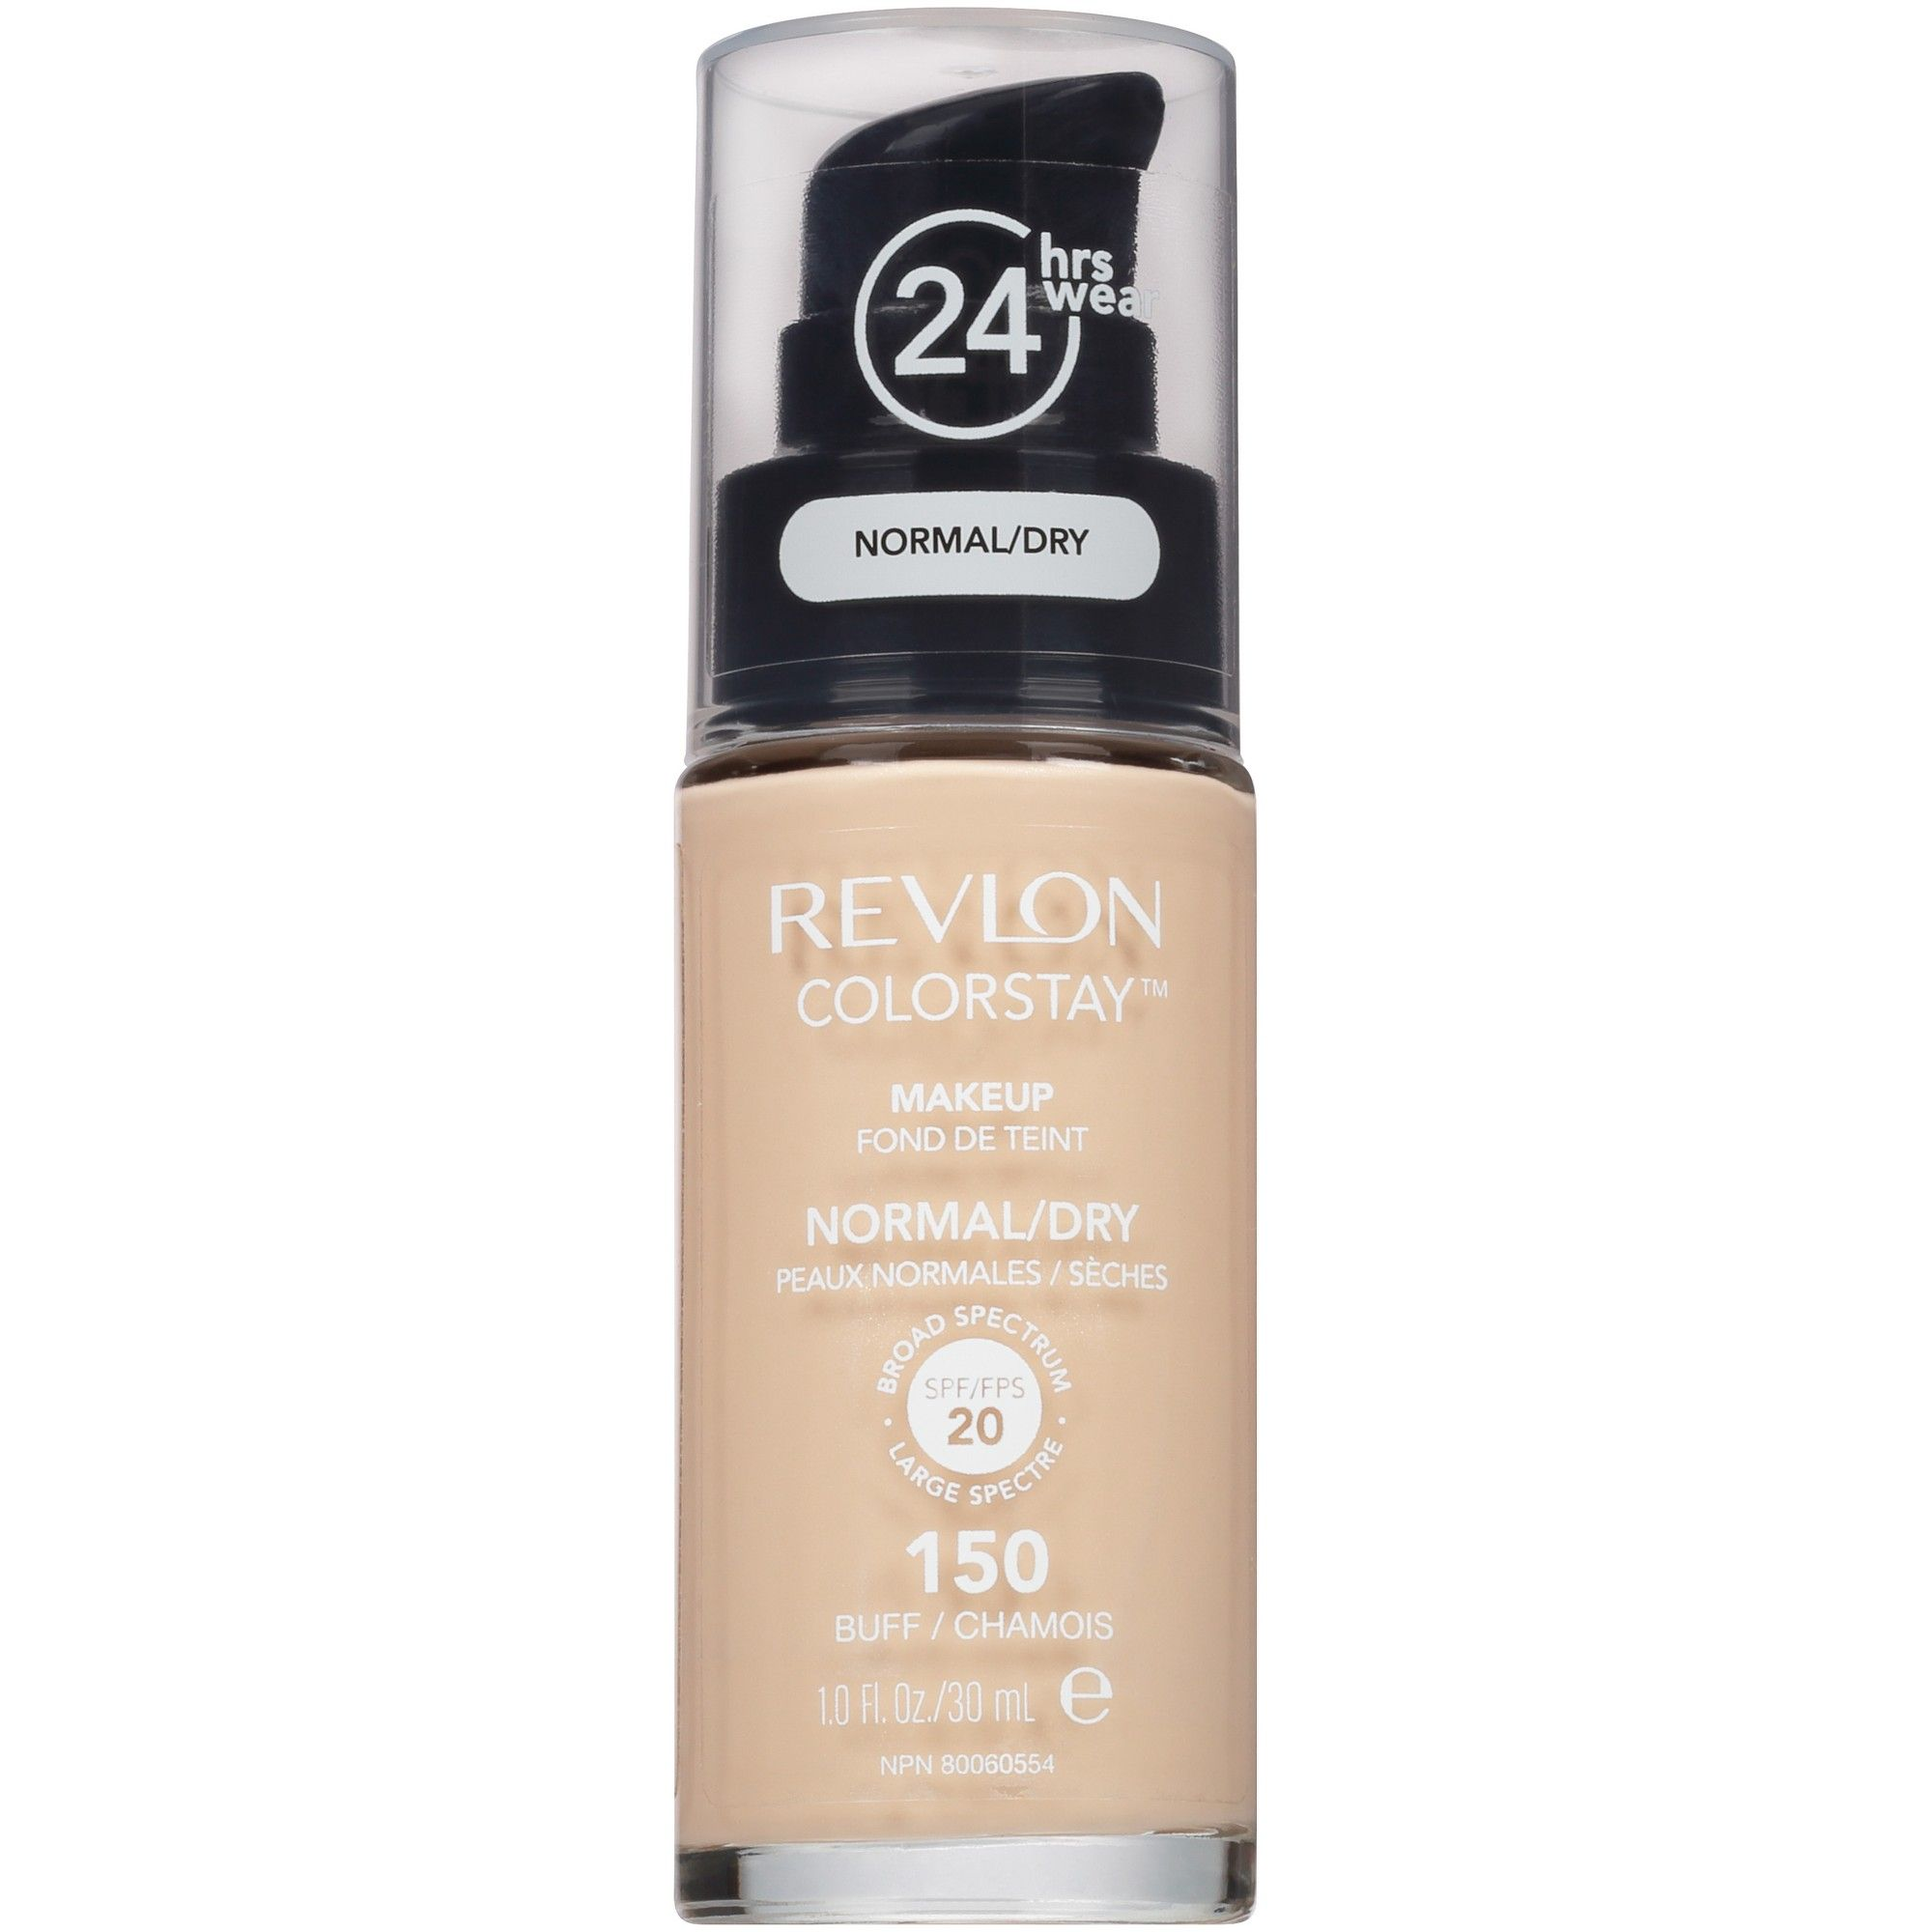 Revlon ColorStay Makeup For Normal/Dry Skin with SPF 20